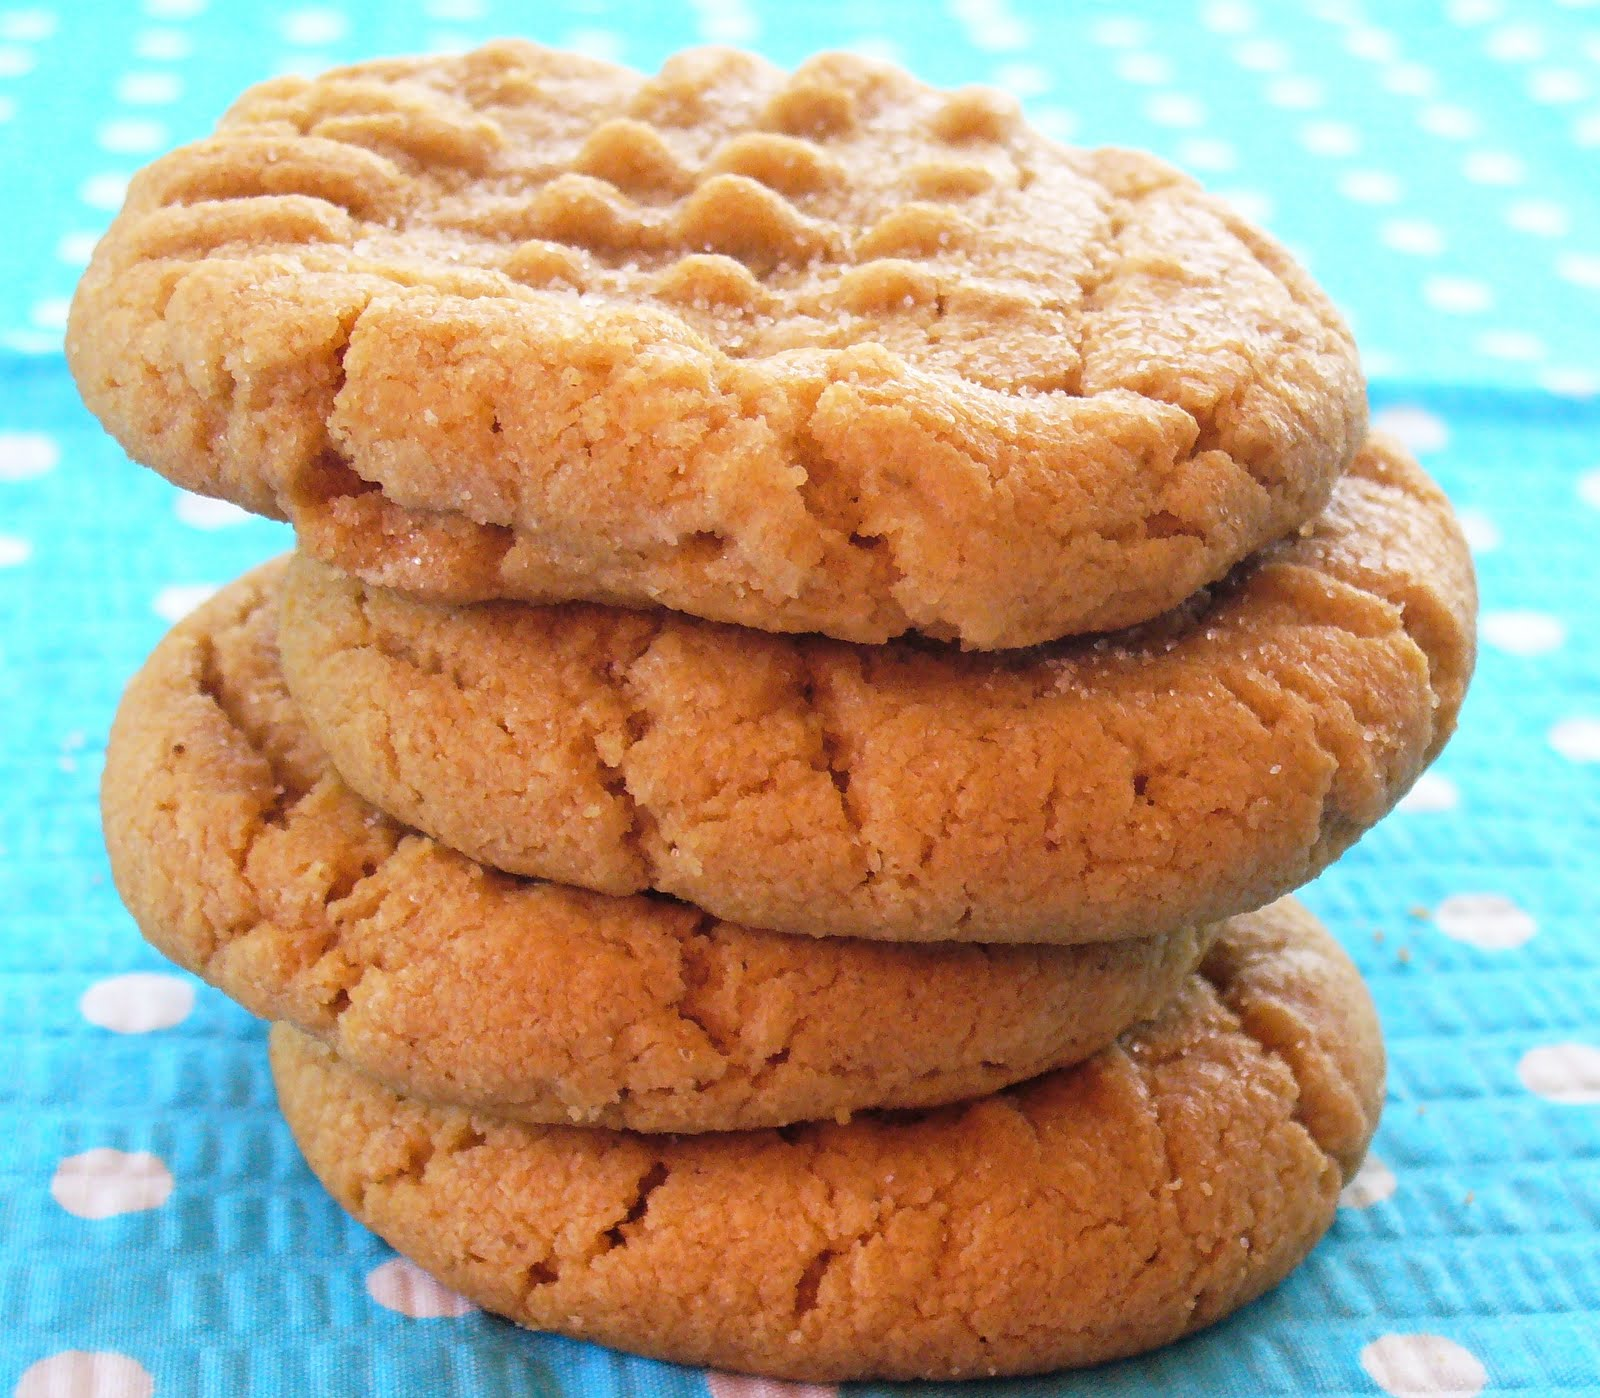 Leenee's Sweetest Delights: Magical Peanut Butter Cookies